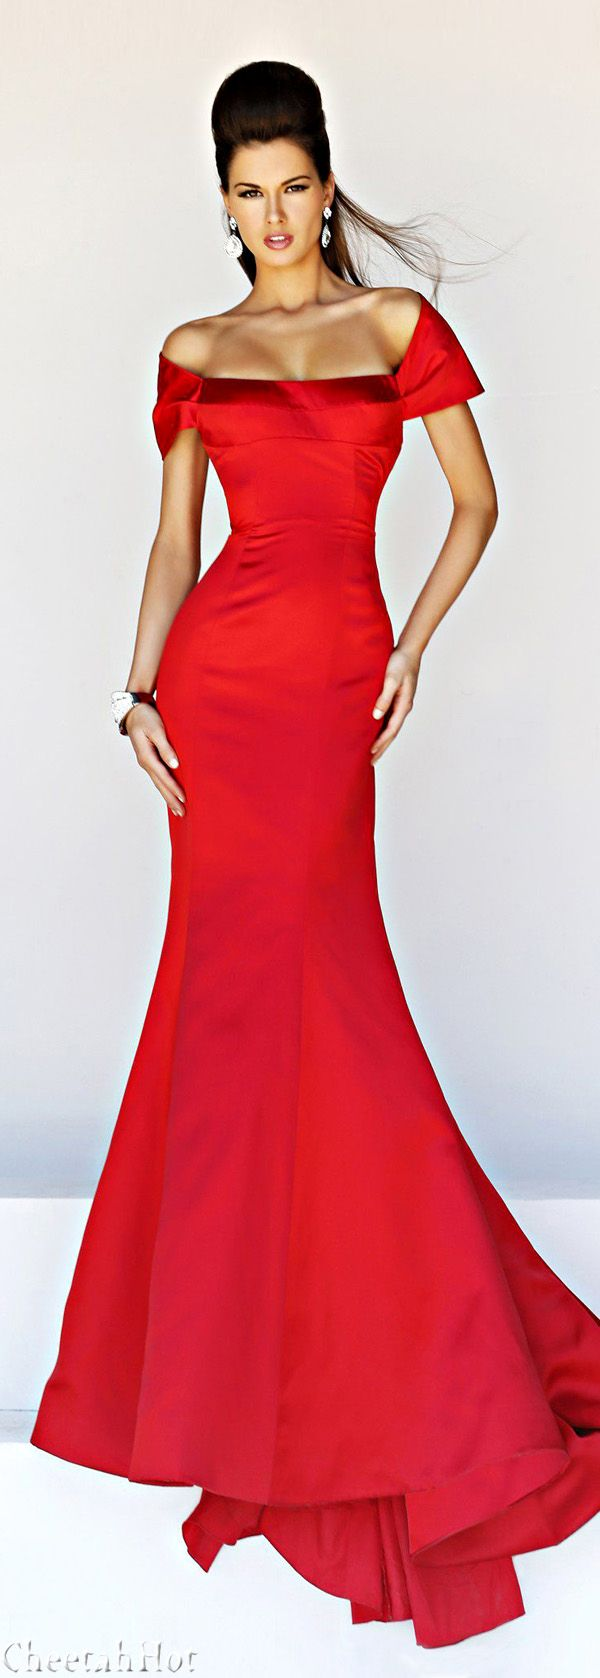 Sherri hill sexy dresses pinterest shoulder phoenix and gowns